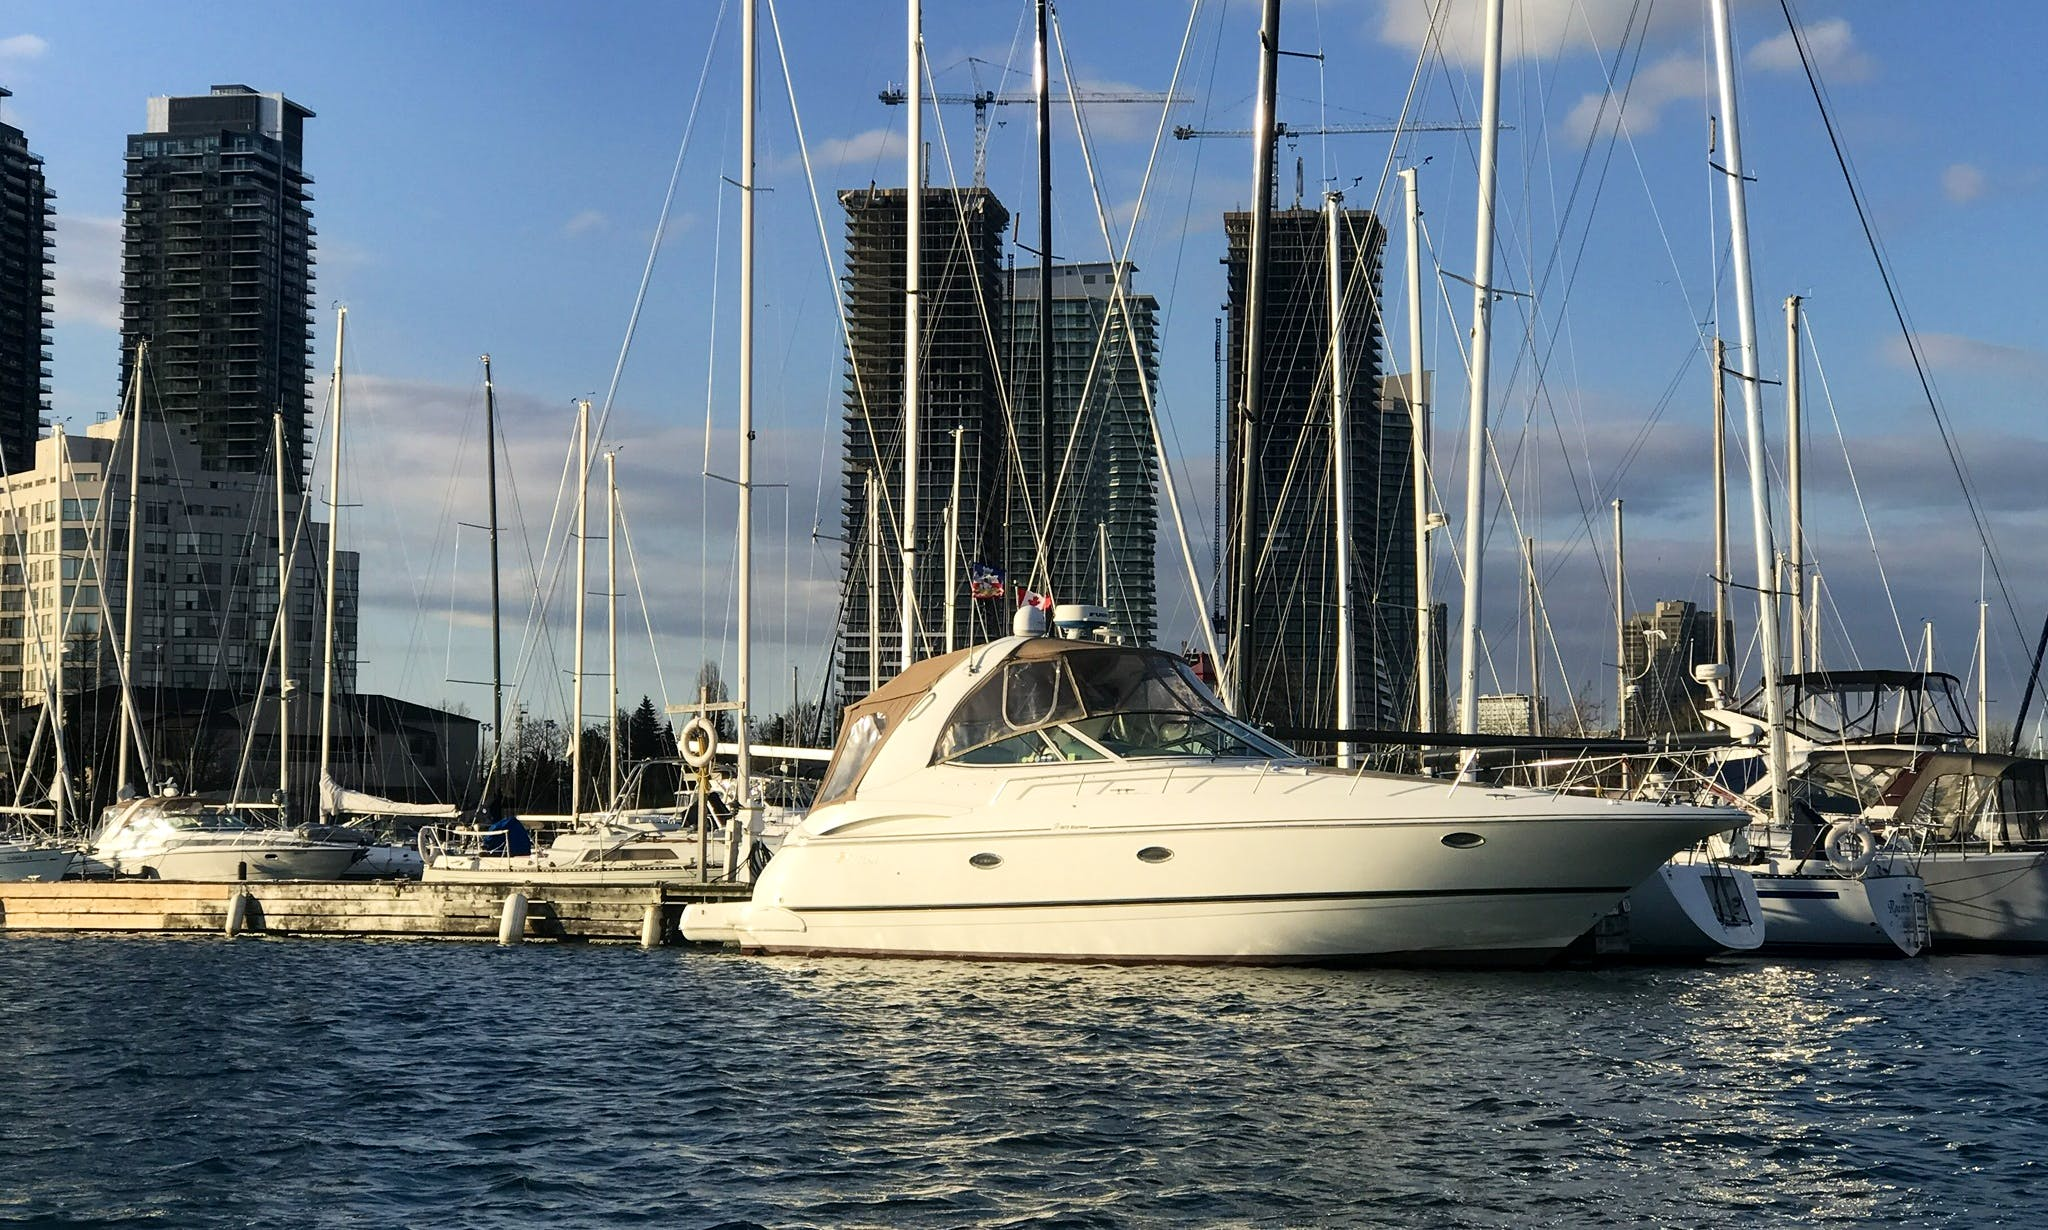 10 person Yacht rental in Toronto